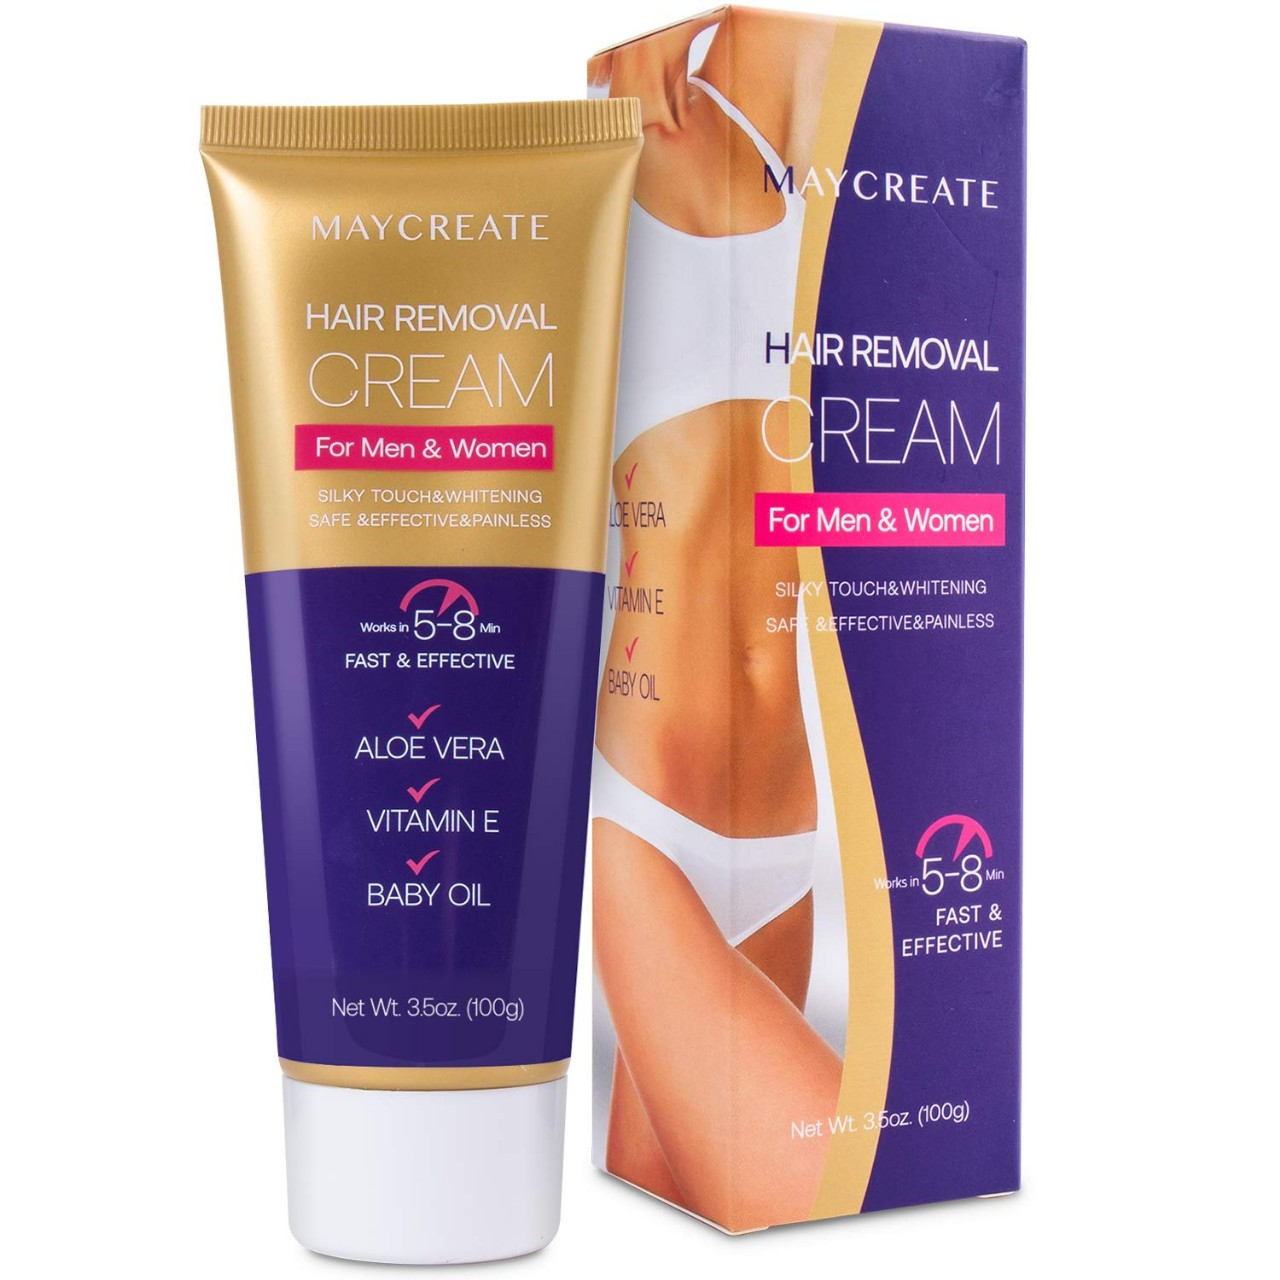 Maycreate Hair Removal Cream, Depilatory Cream, Hair Remover for Men and Women, Natural Painless